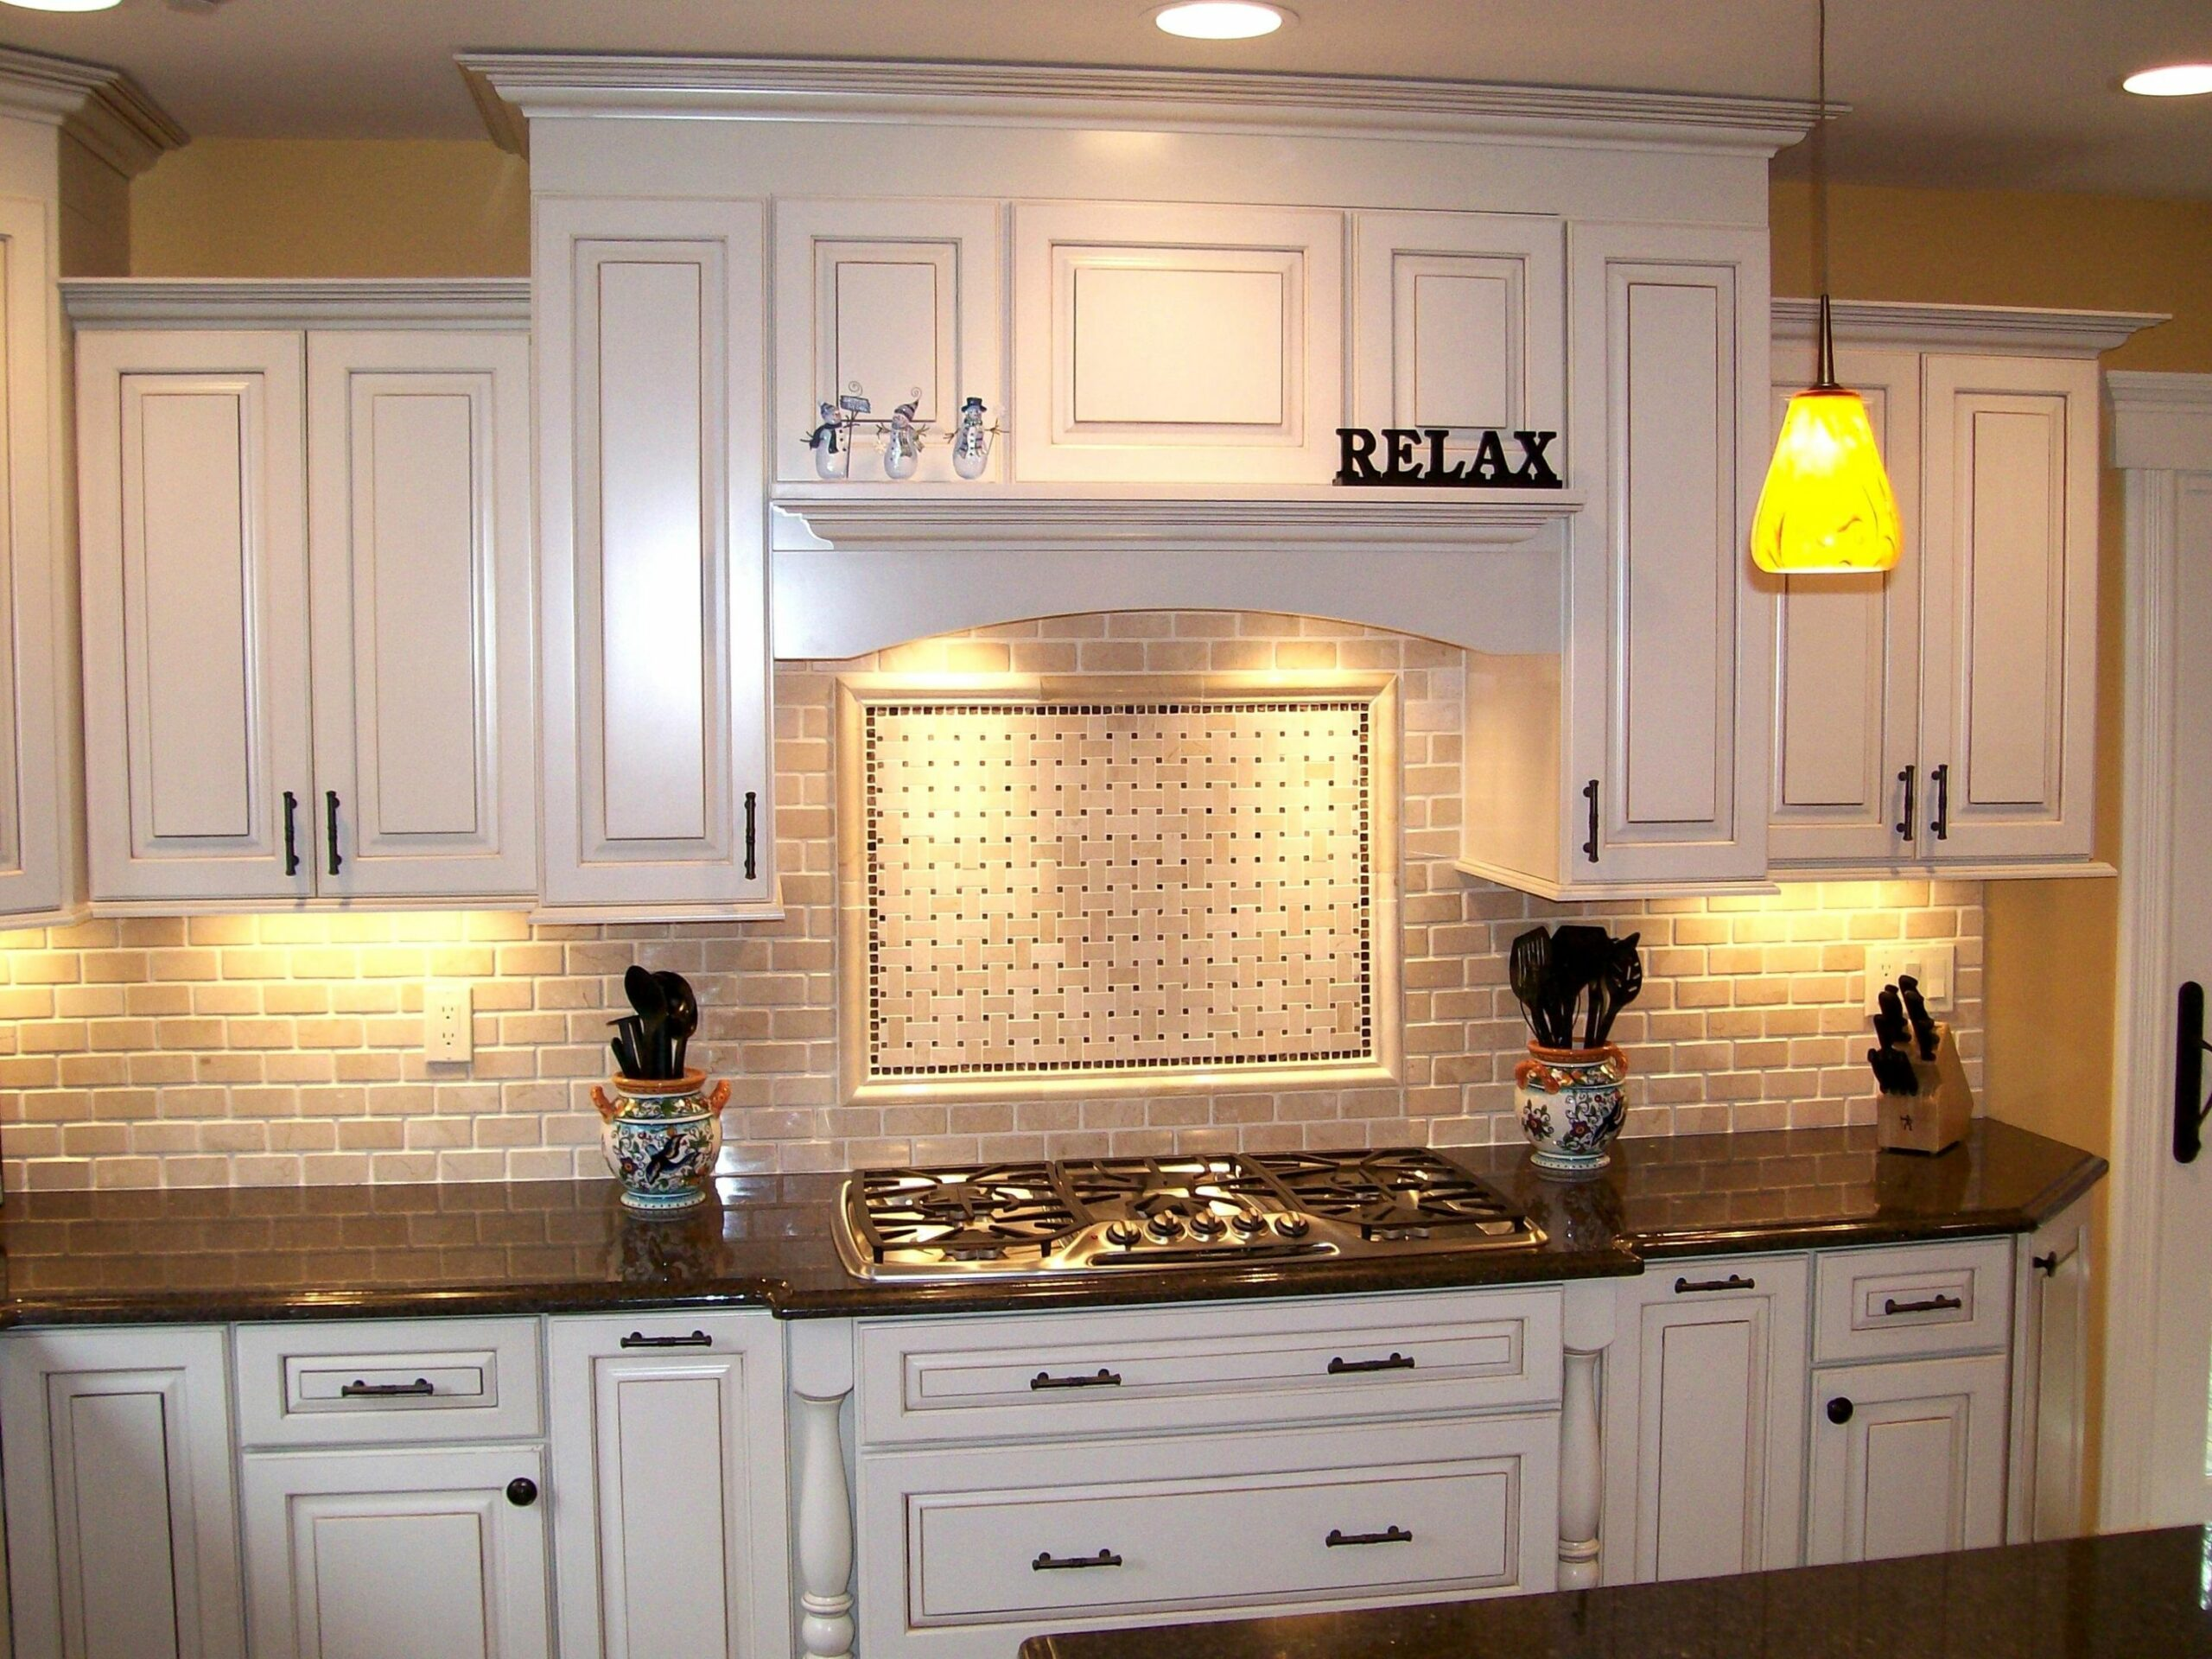 Delightful Backsplash Quartz Countertop Ideas Ps With White ..